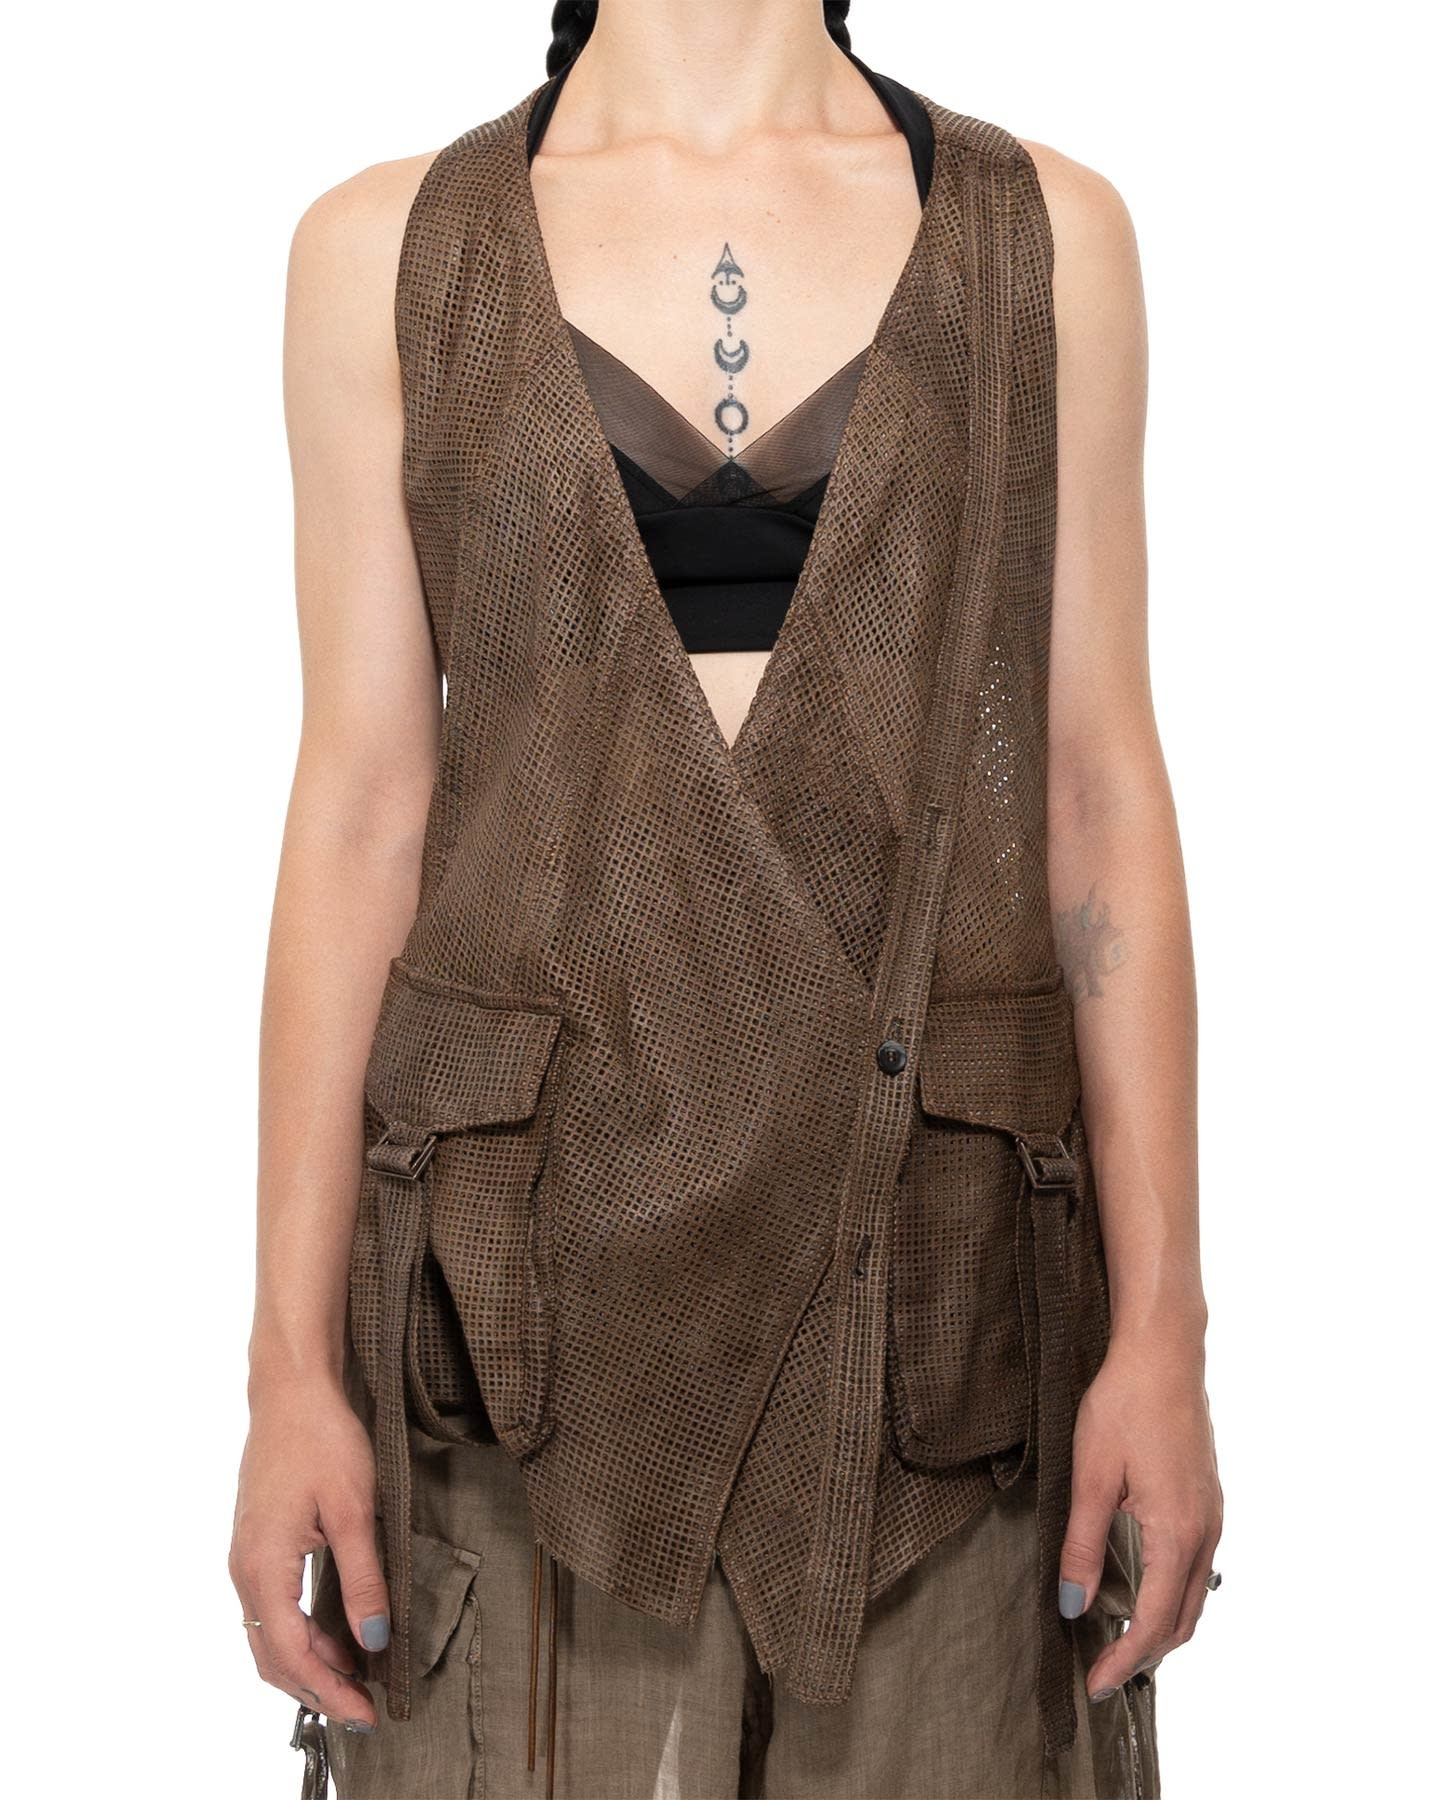 PERFORATED LEATHER VEST - DUST